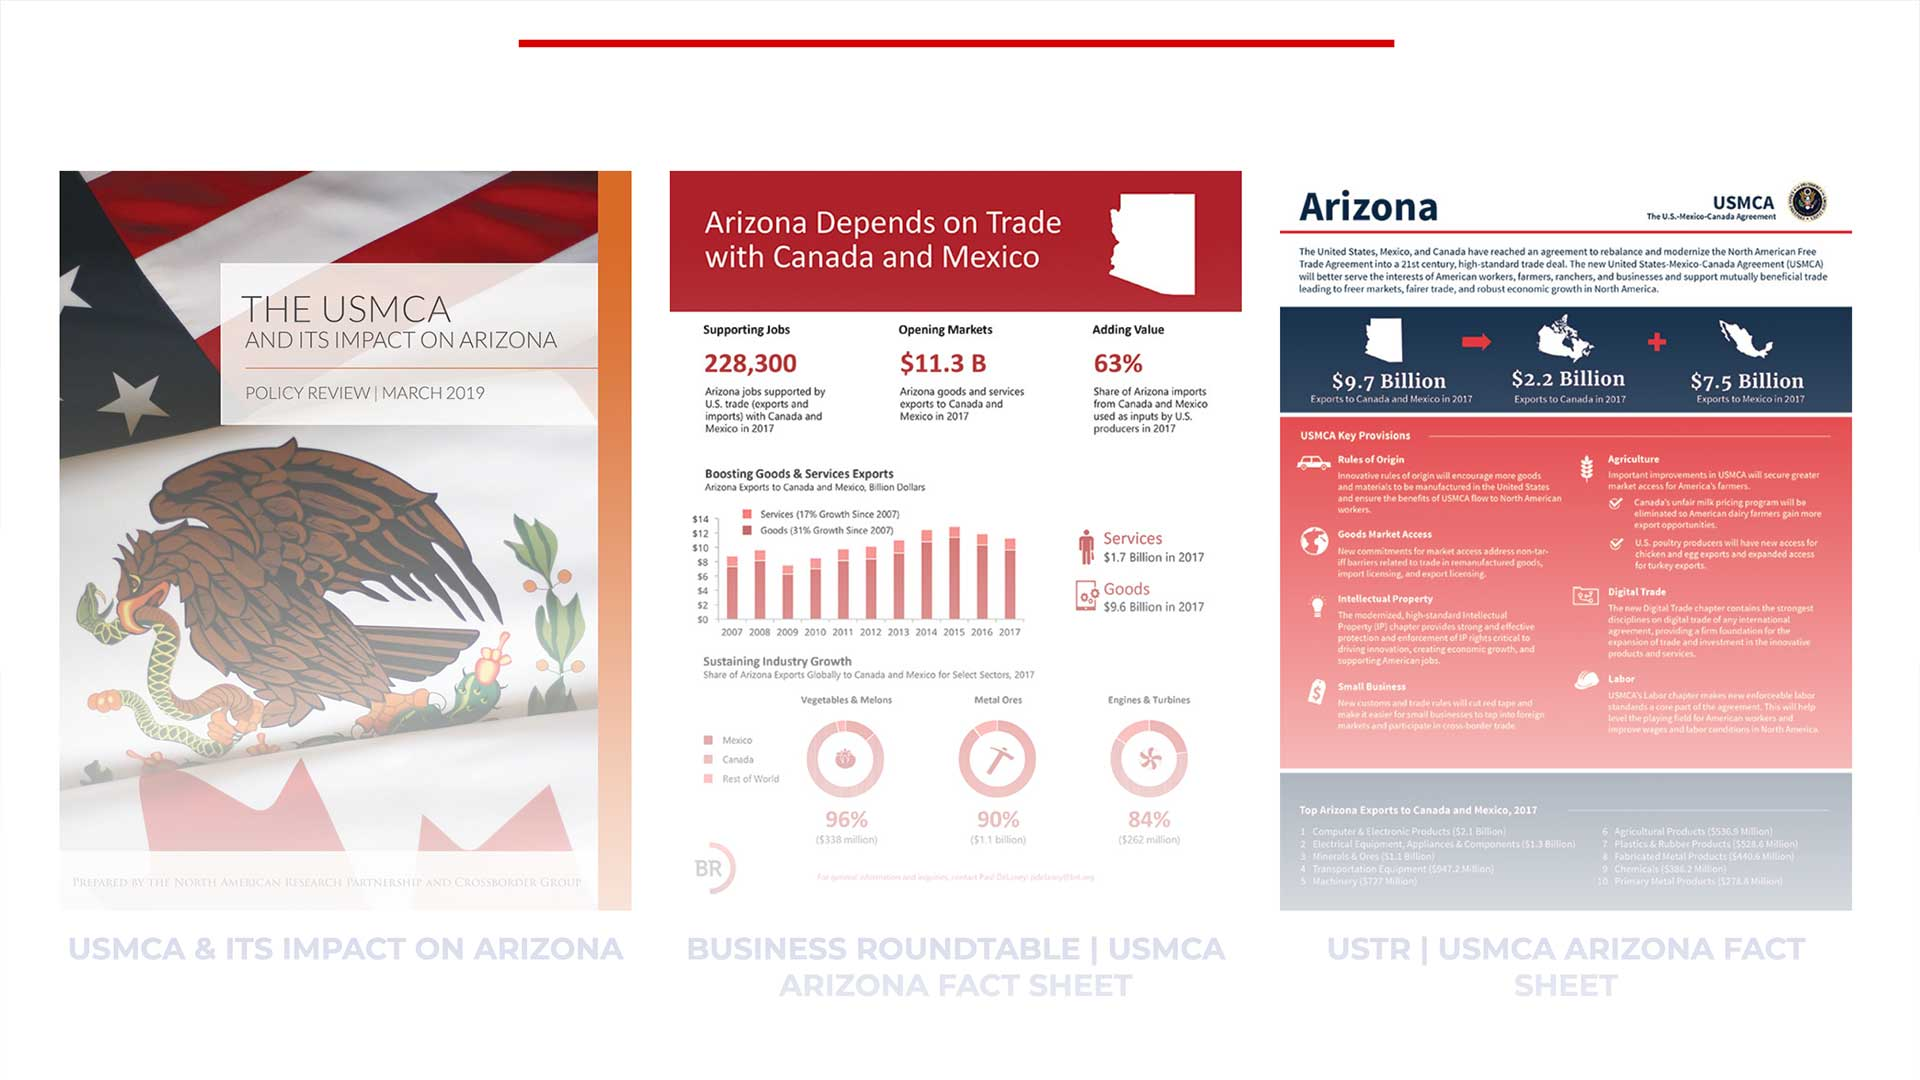 Screen grab from a website promoting the USMCA and its impact on Arizona, retrieved Aug. 28, 2019.